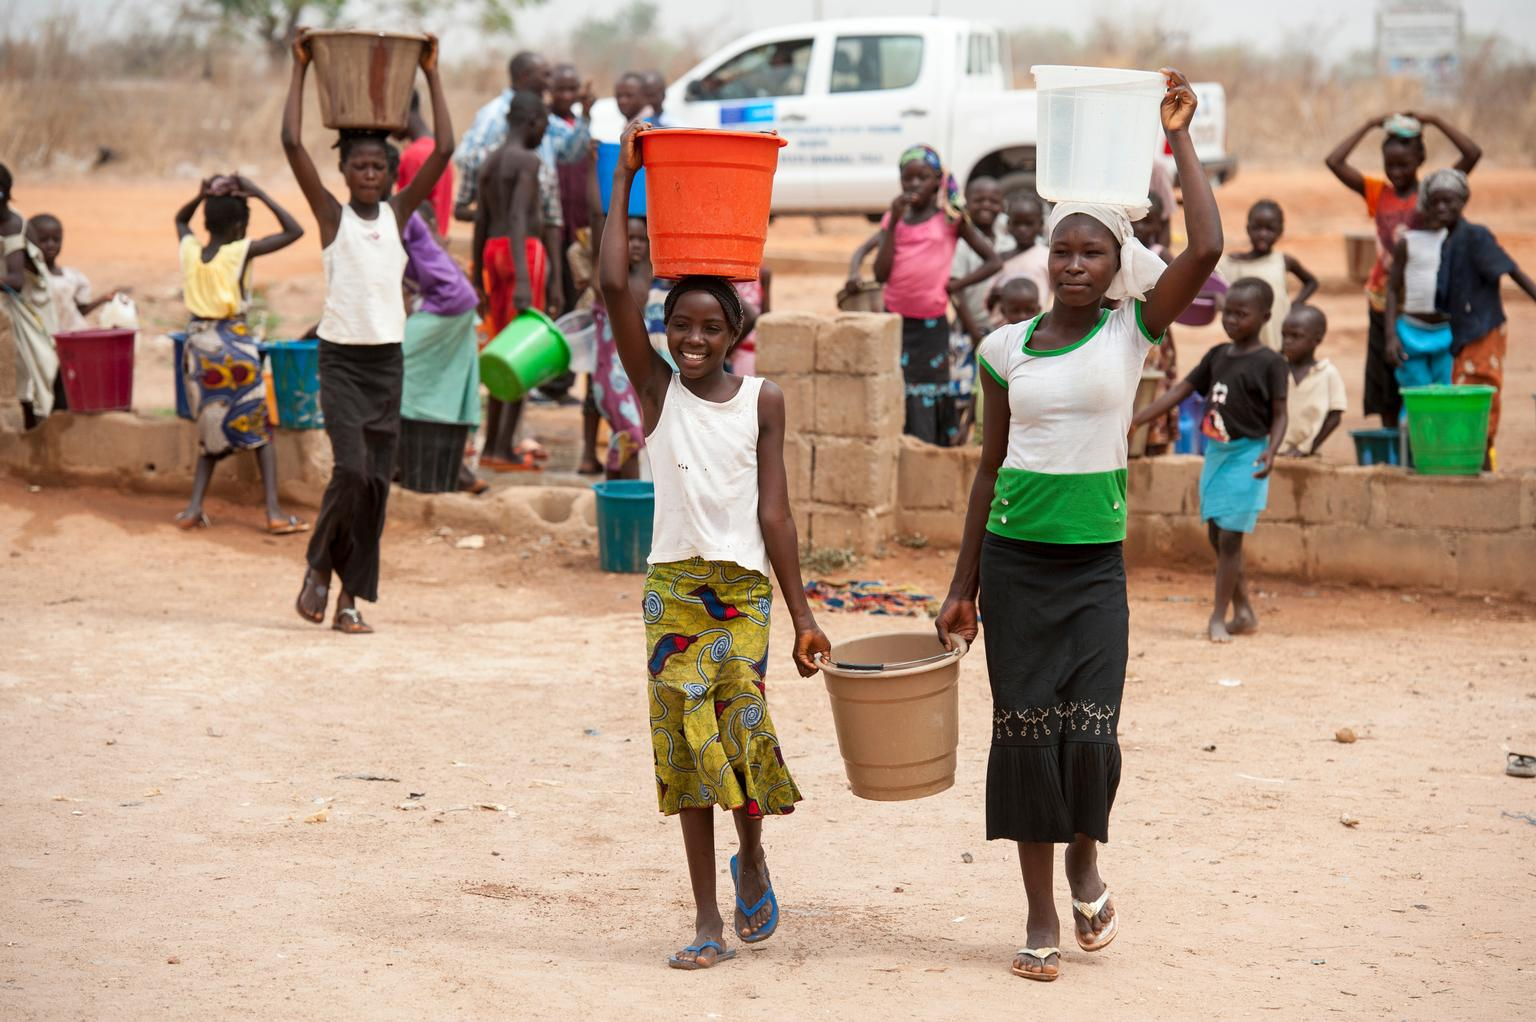 Girls carry buckets filled with water in a camp for internally displaced people, outside Yola in Nigeria.